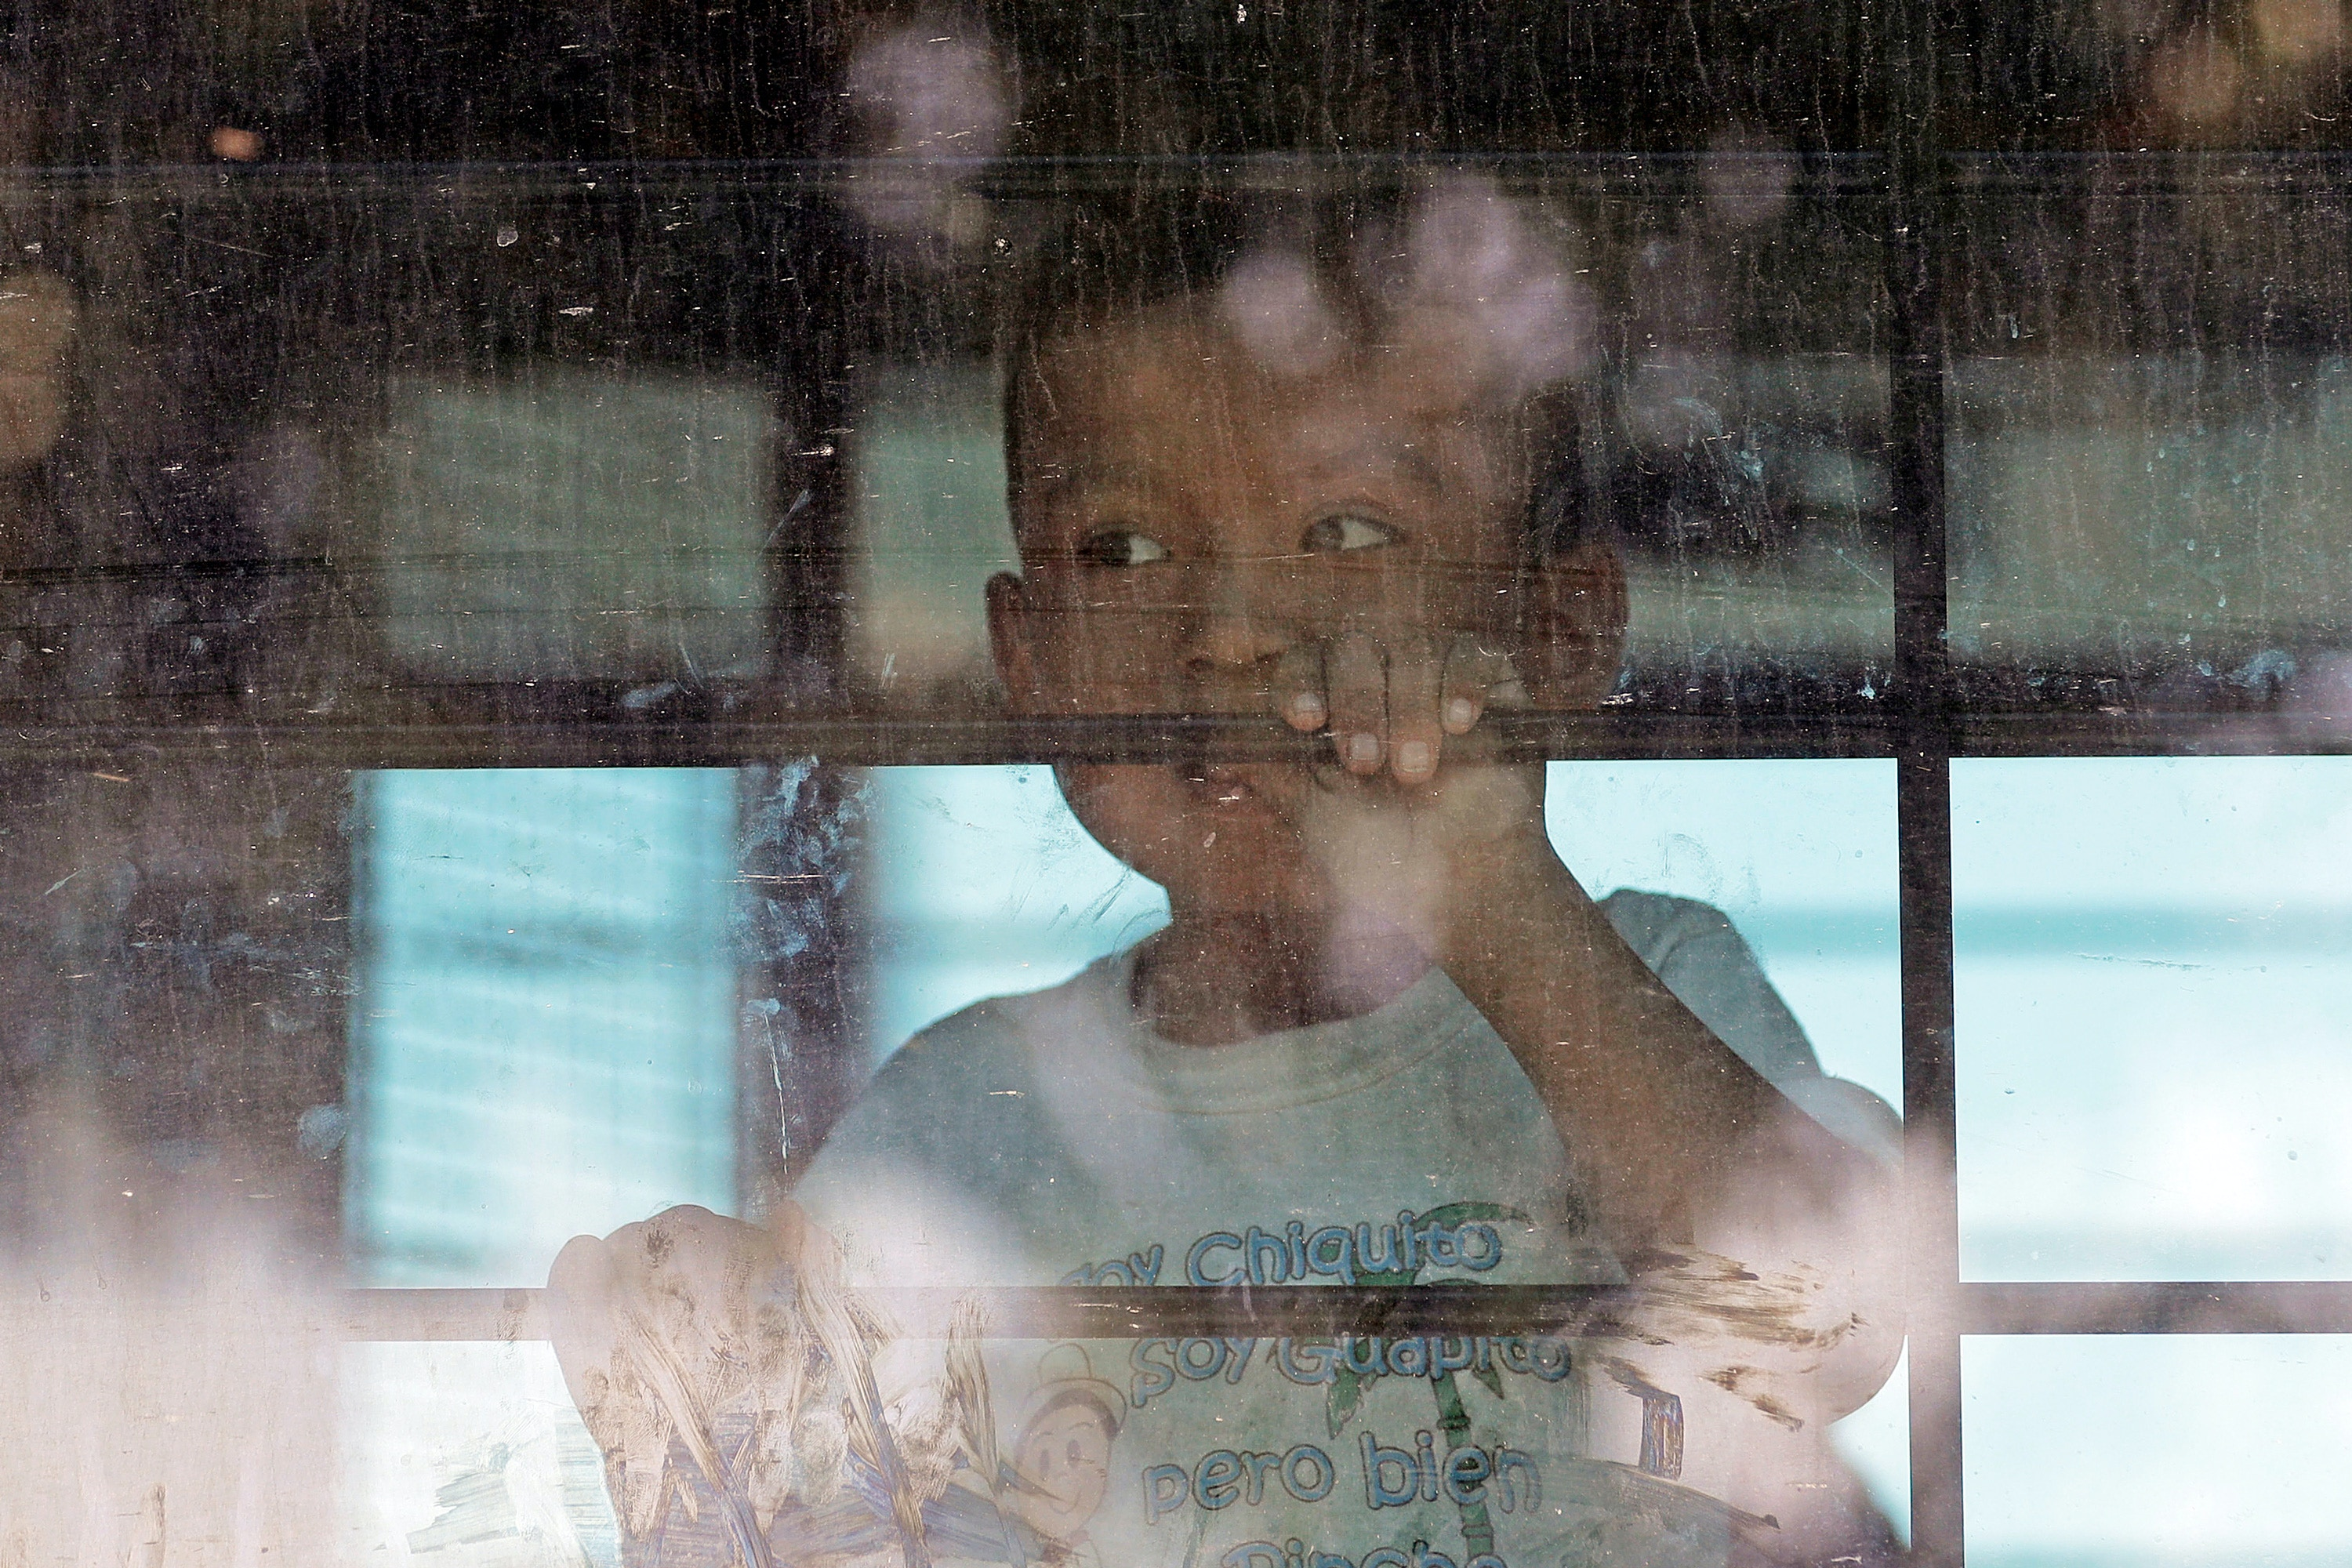 An immigrant child looks out from a U.S. Border Patrol bus leaving as protesters block the street outside the U.S. Border Patrol Central Processing Center Saturday, June 23, 2018, in McAllen, Texas. Additional law enforcement officials were called in to help control the crowd and allow the bus to move. (AP Photo/David J. Phillip)